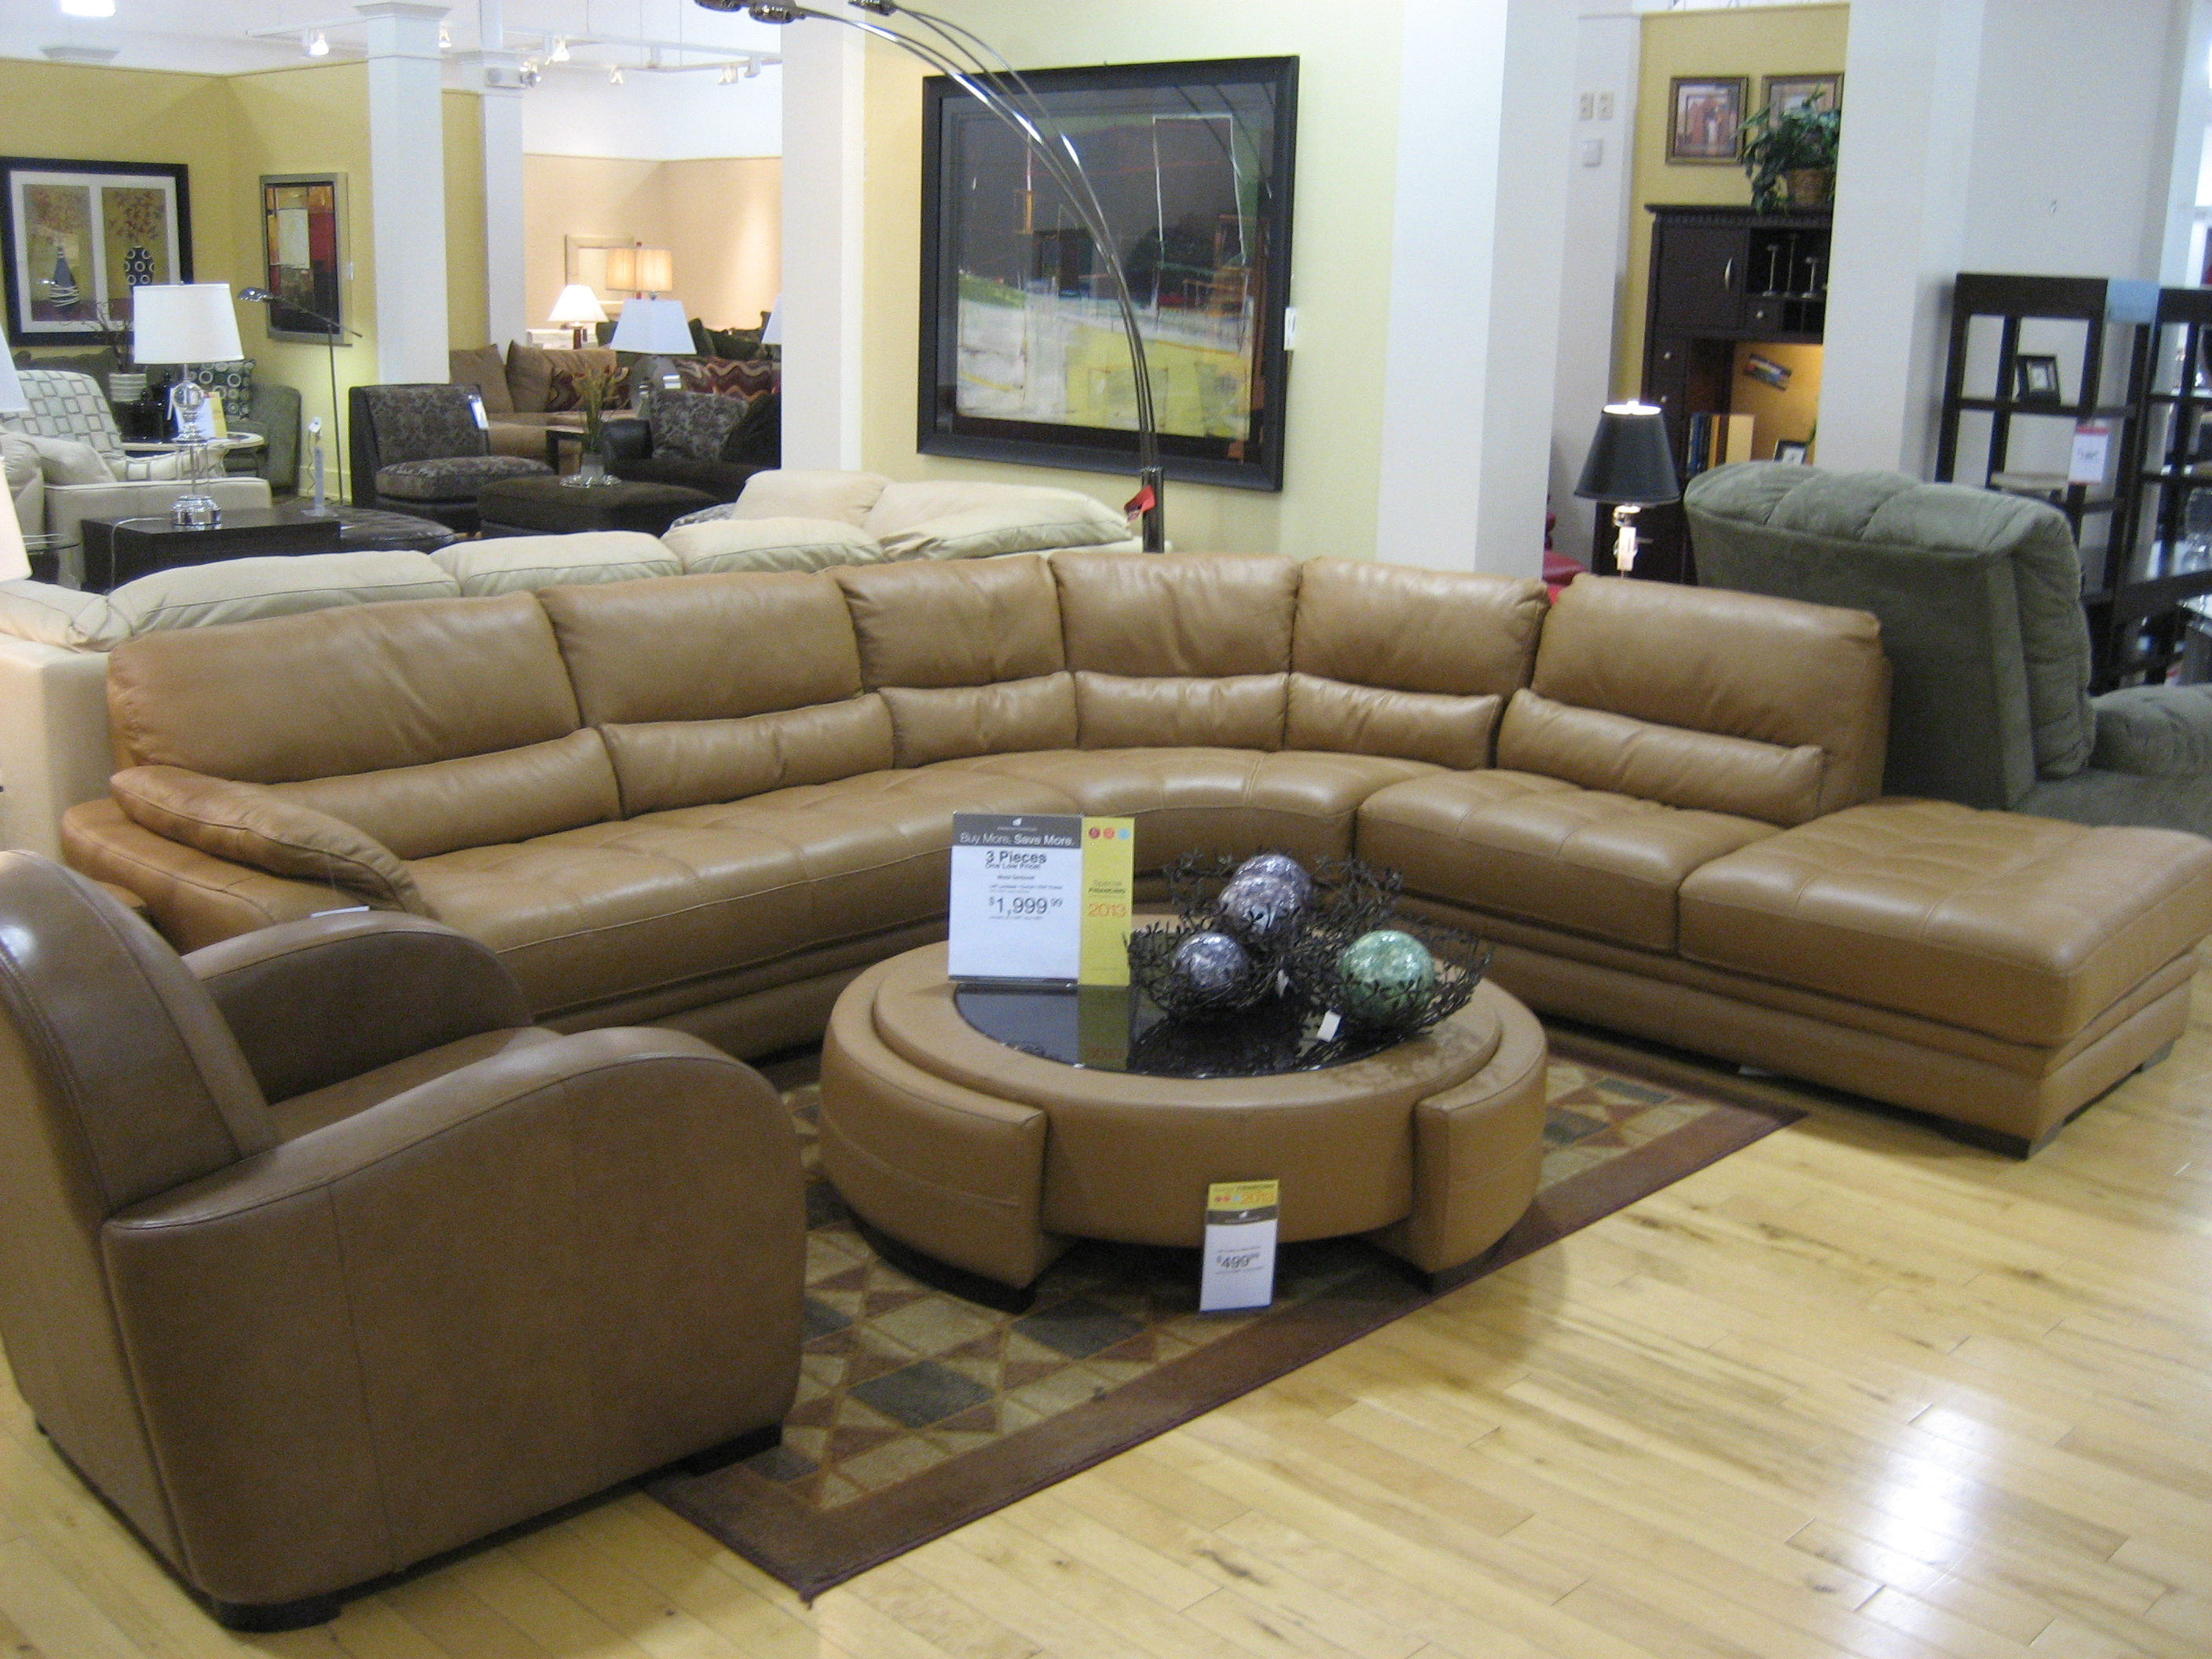 File:Living Room Couch (2284467148).jpg - Wikimedia Commons